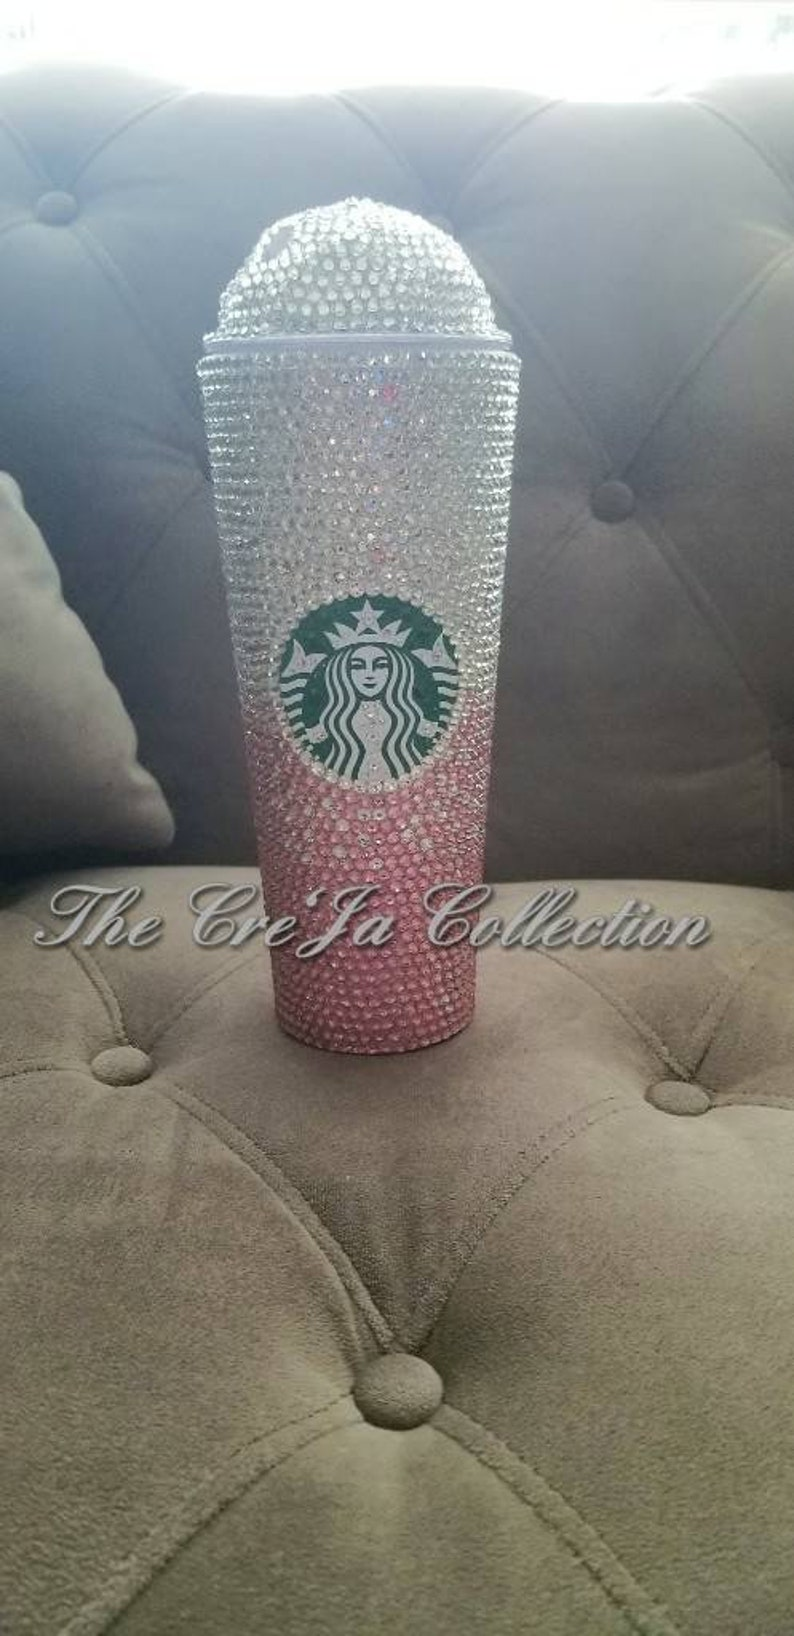 a2eecb3ae35 Starbucks Bling Cup, Coffee Bling Cup, Starbucks Tumbler, JLo Cup,  Rhinestone Starbucks Cup, Rhinestone Coffee Cup, 16oz Cup